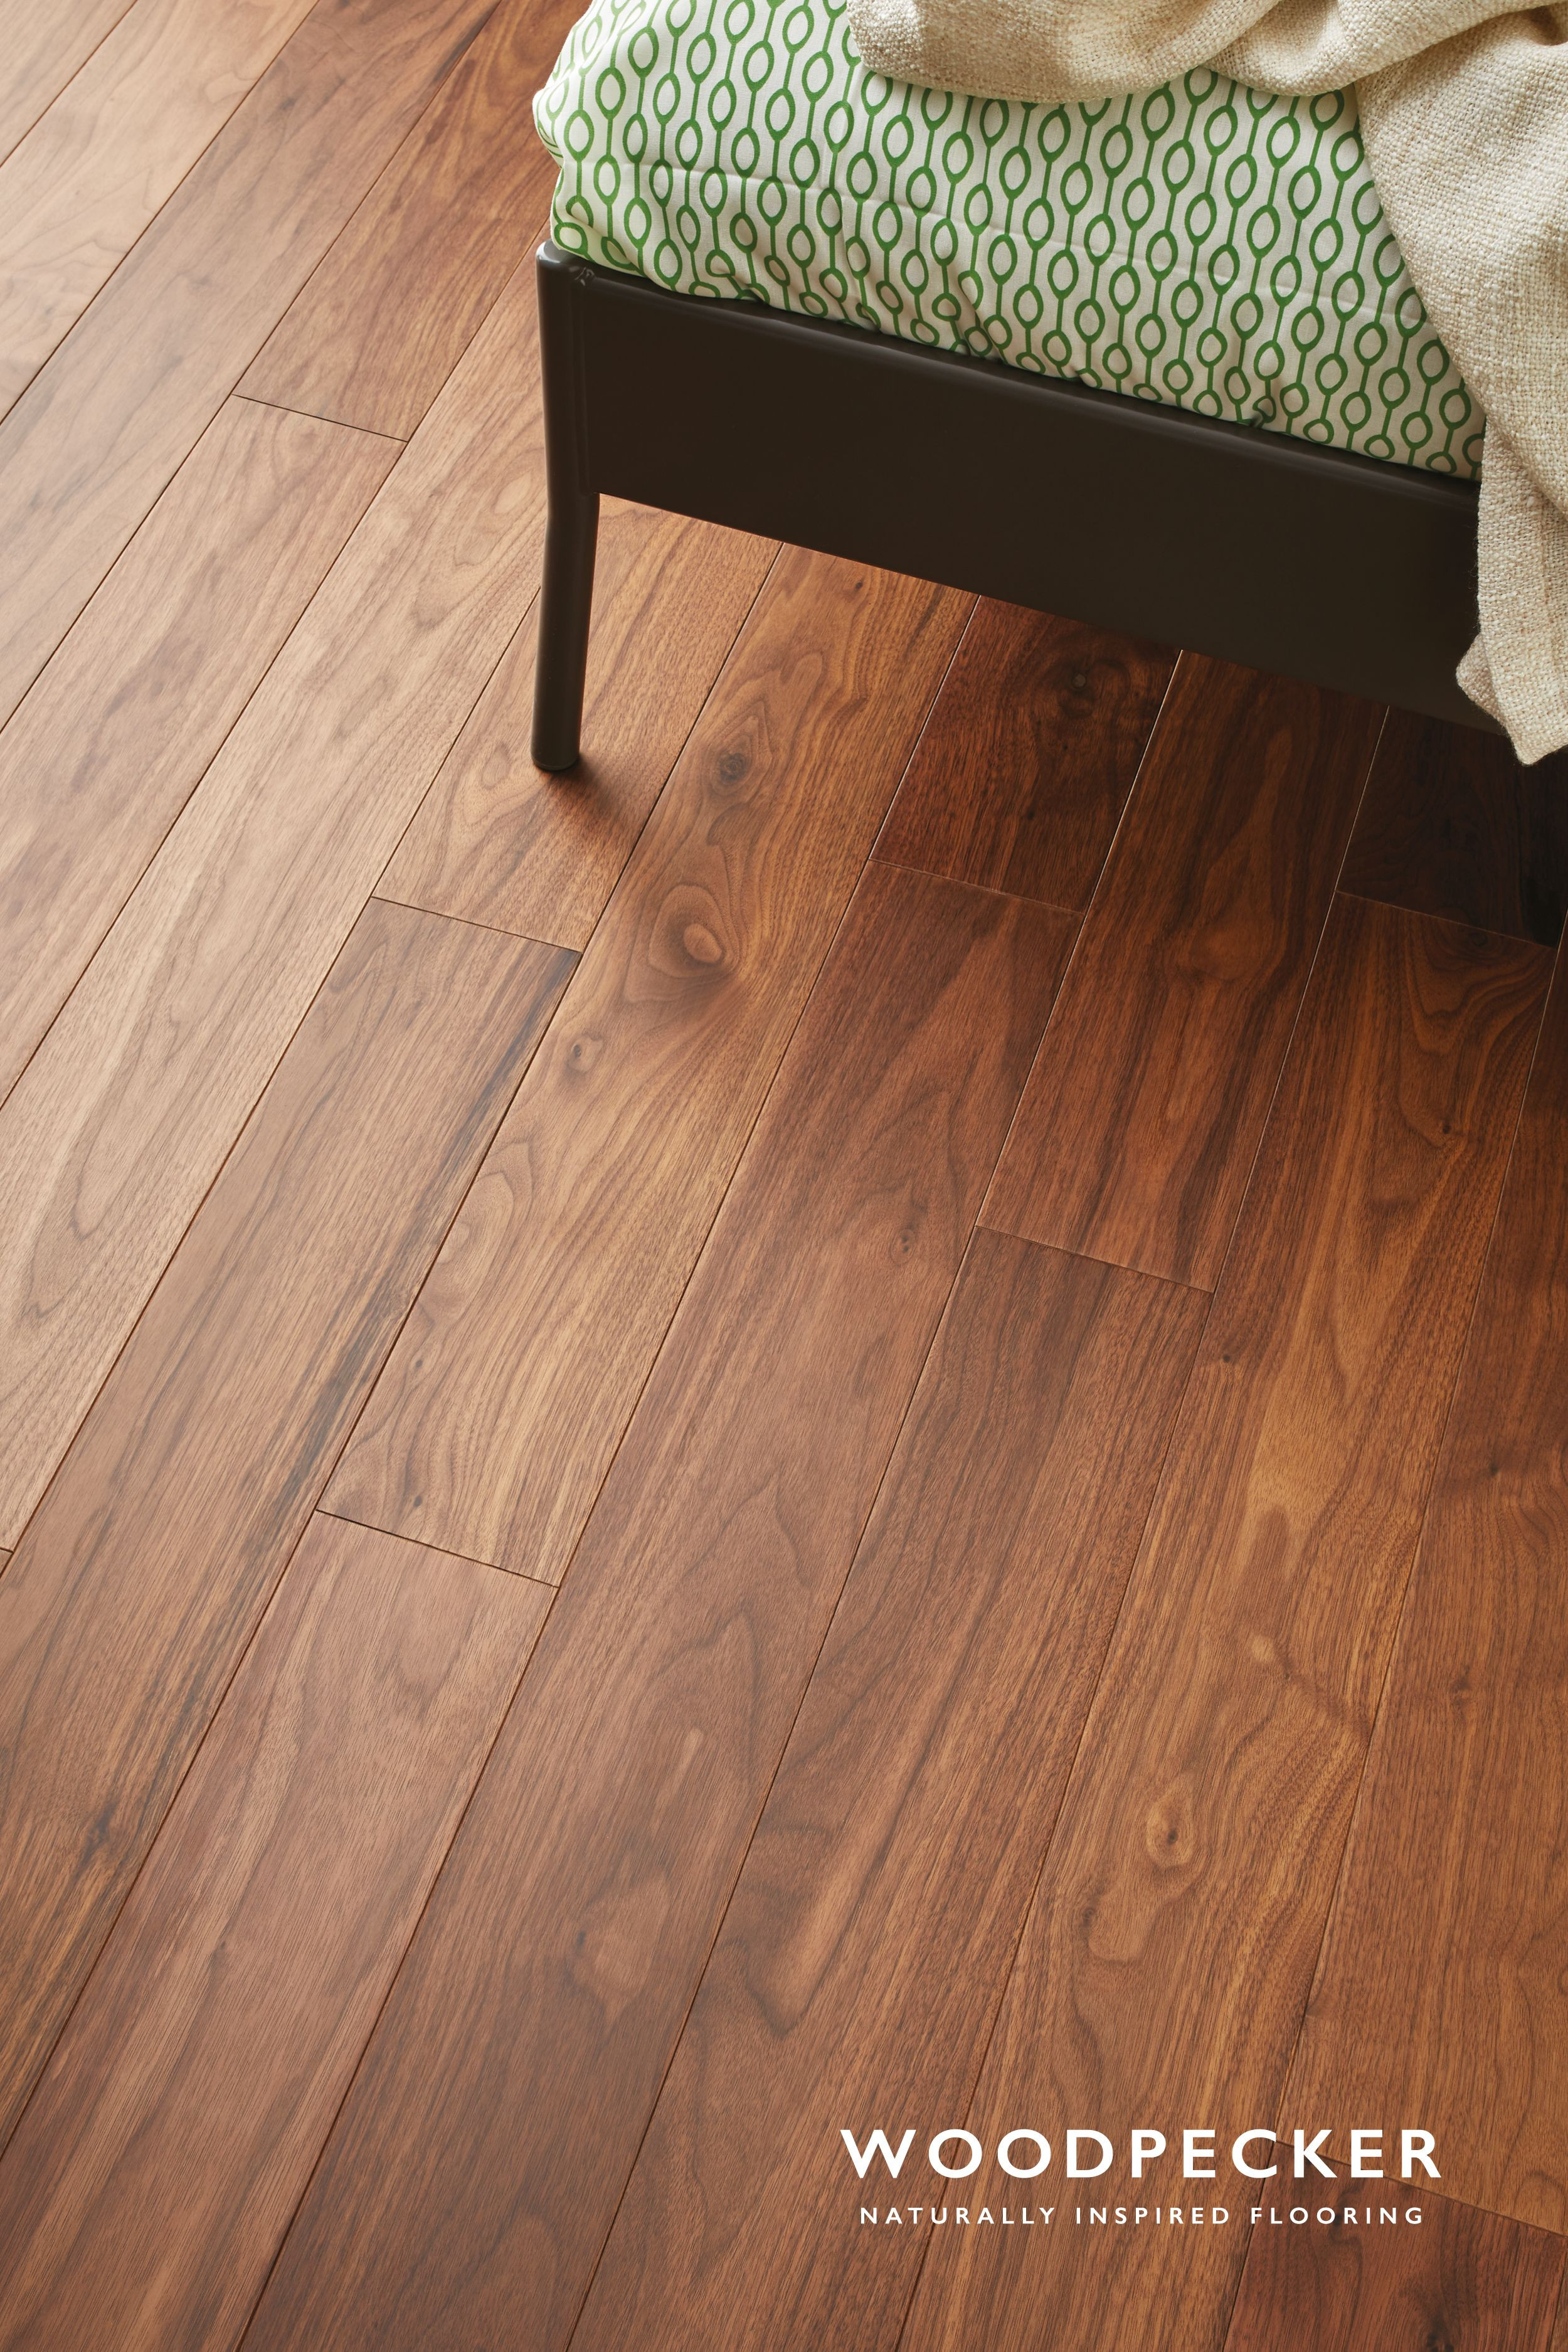 discount engineered hardwood flooring of raglan walnut exotic engineered wood and wood flooring with regard to walnut flooring is exotic and exciting with wide flowing grain patterns and a medley chocolate